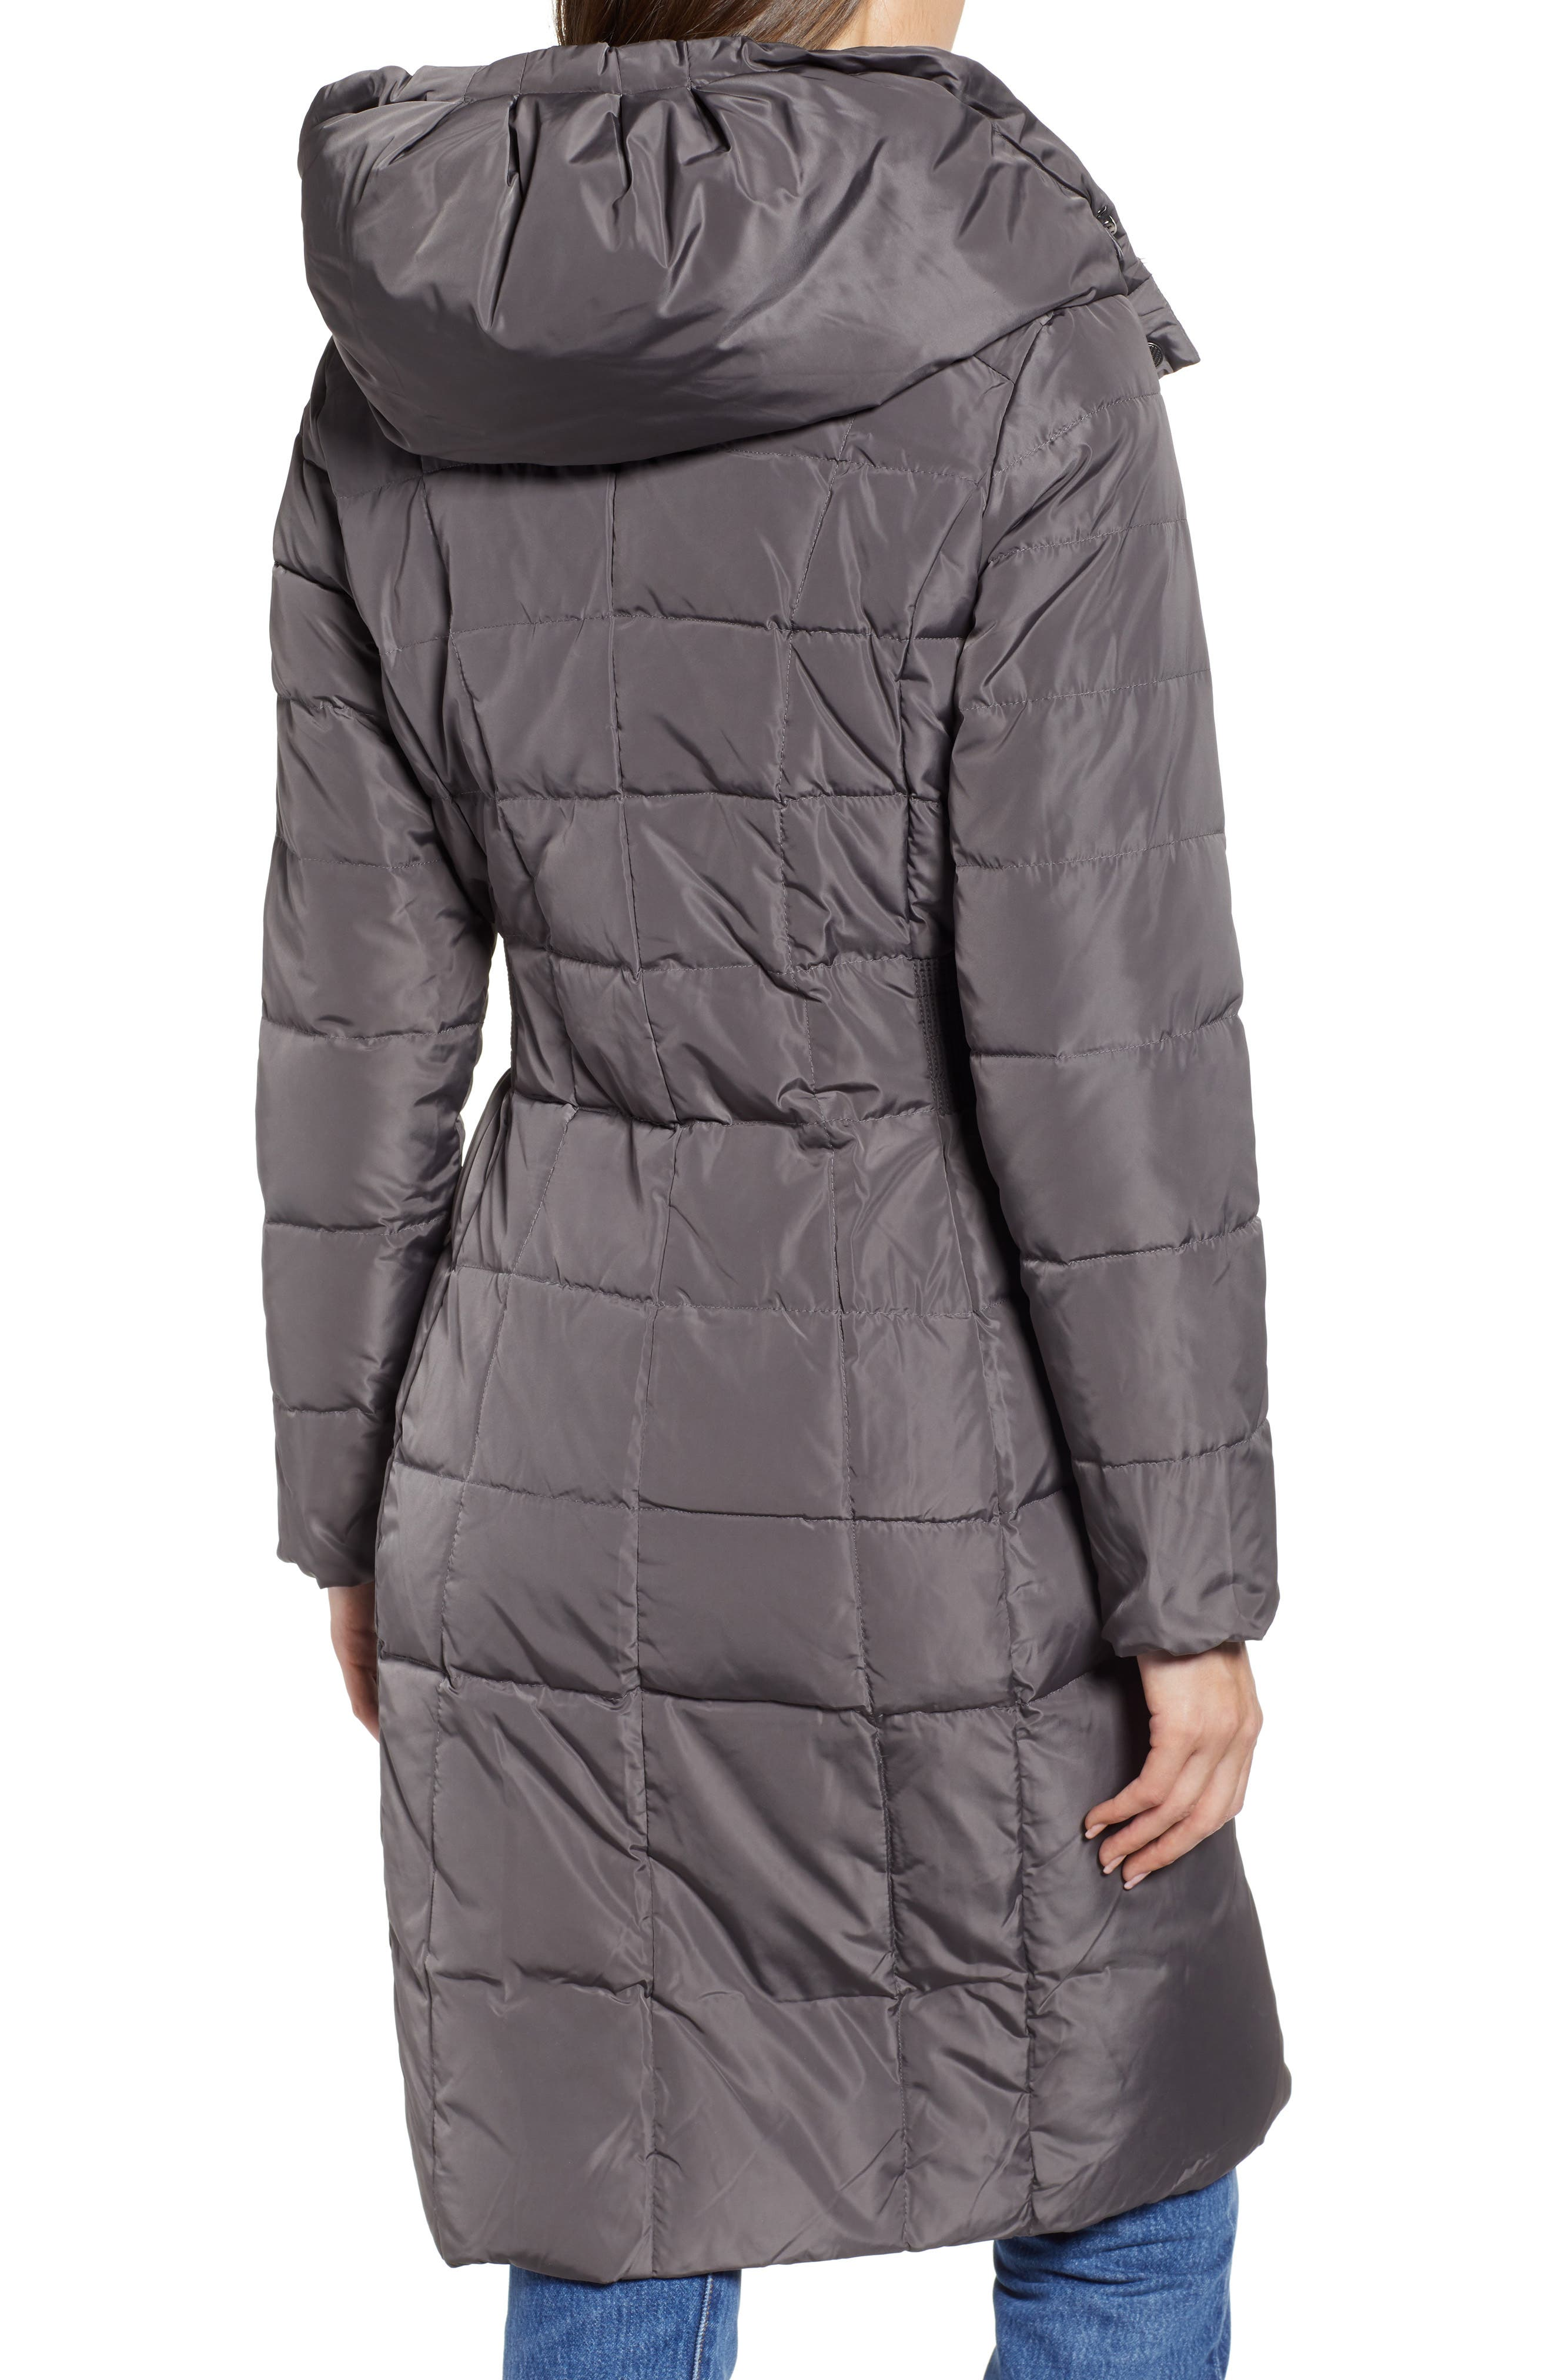 COLE HAAN SIGNATURE, Cole Haan Bib Insert Down & Feather Fill Coat, Alternate thumbnail 2, color, 024